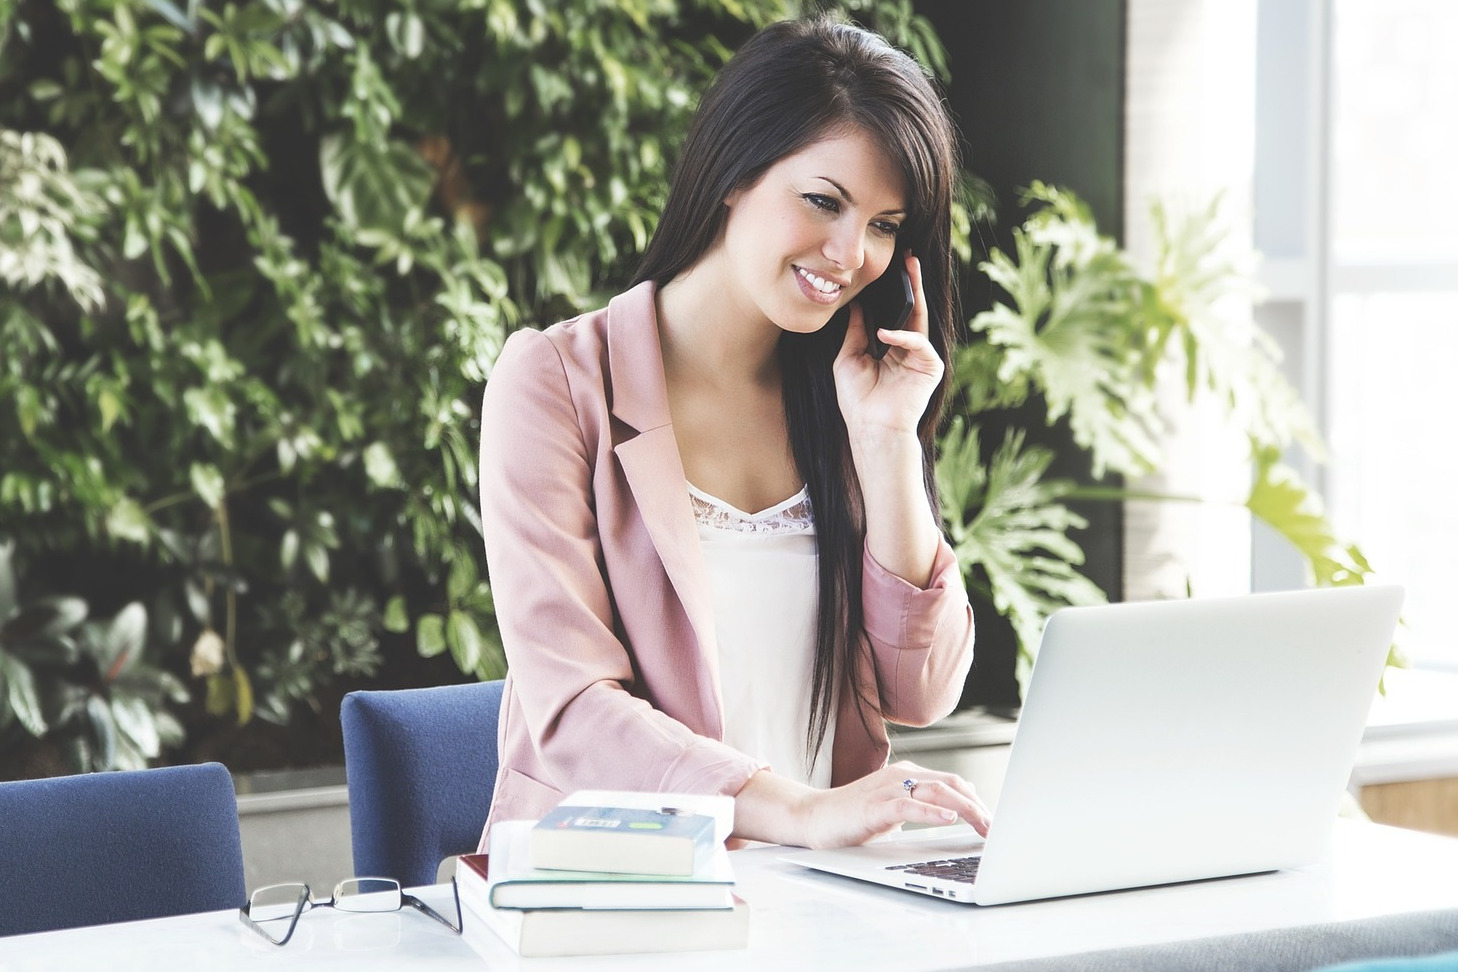 Woman on a Business Call